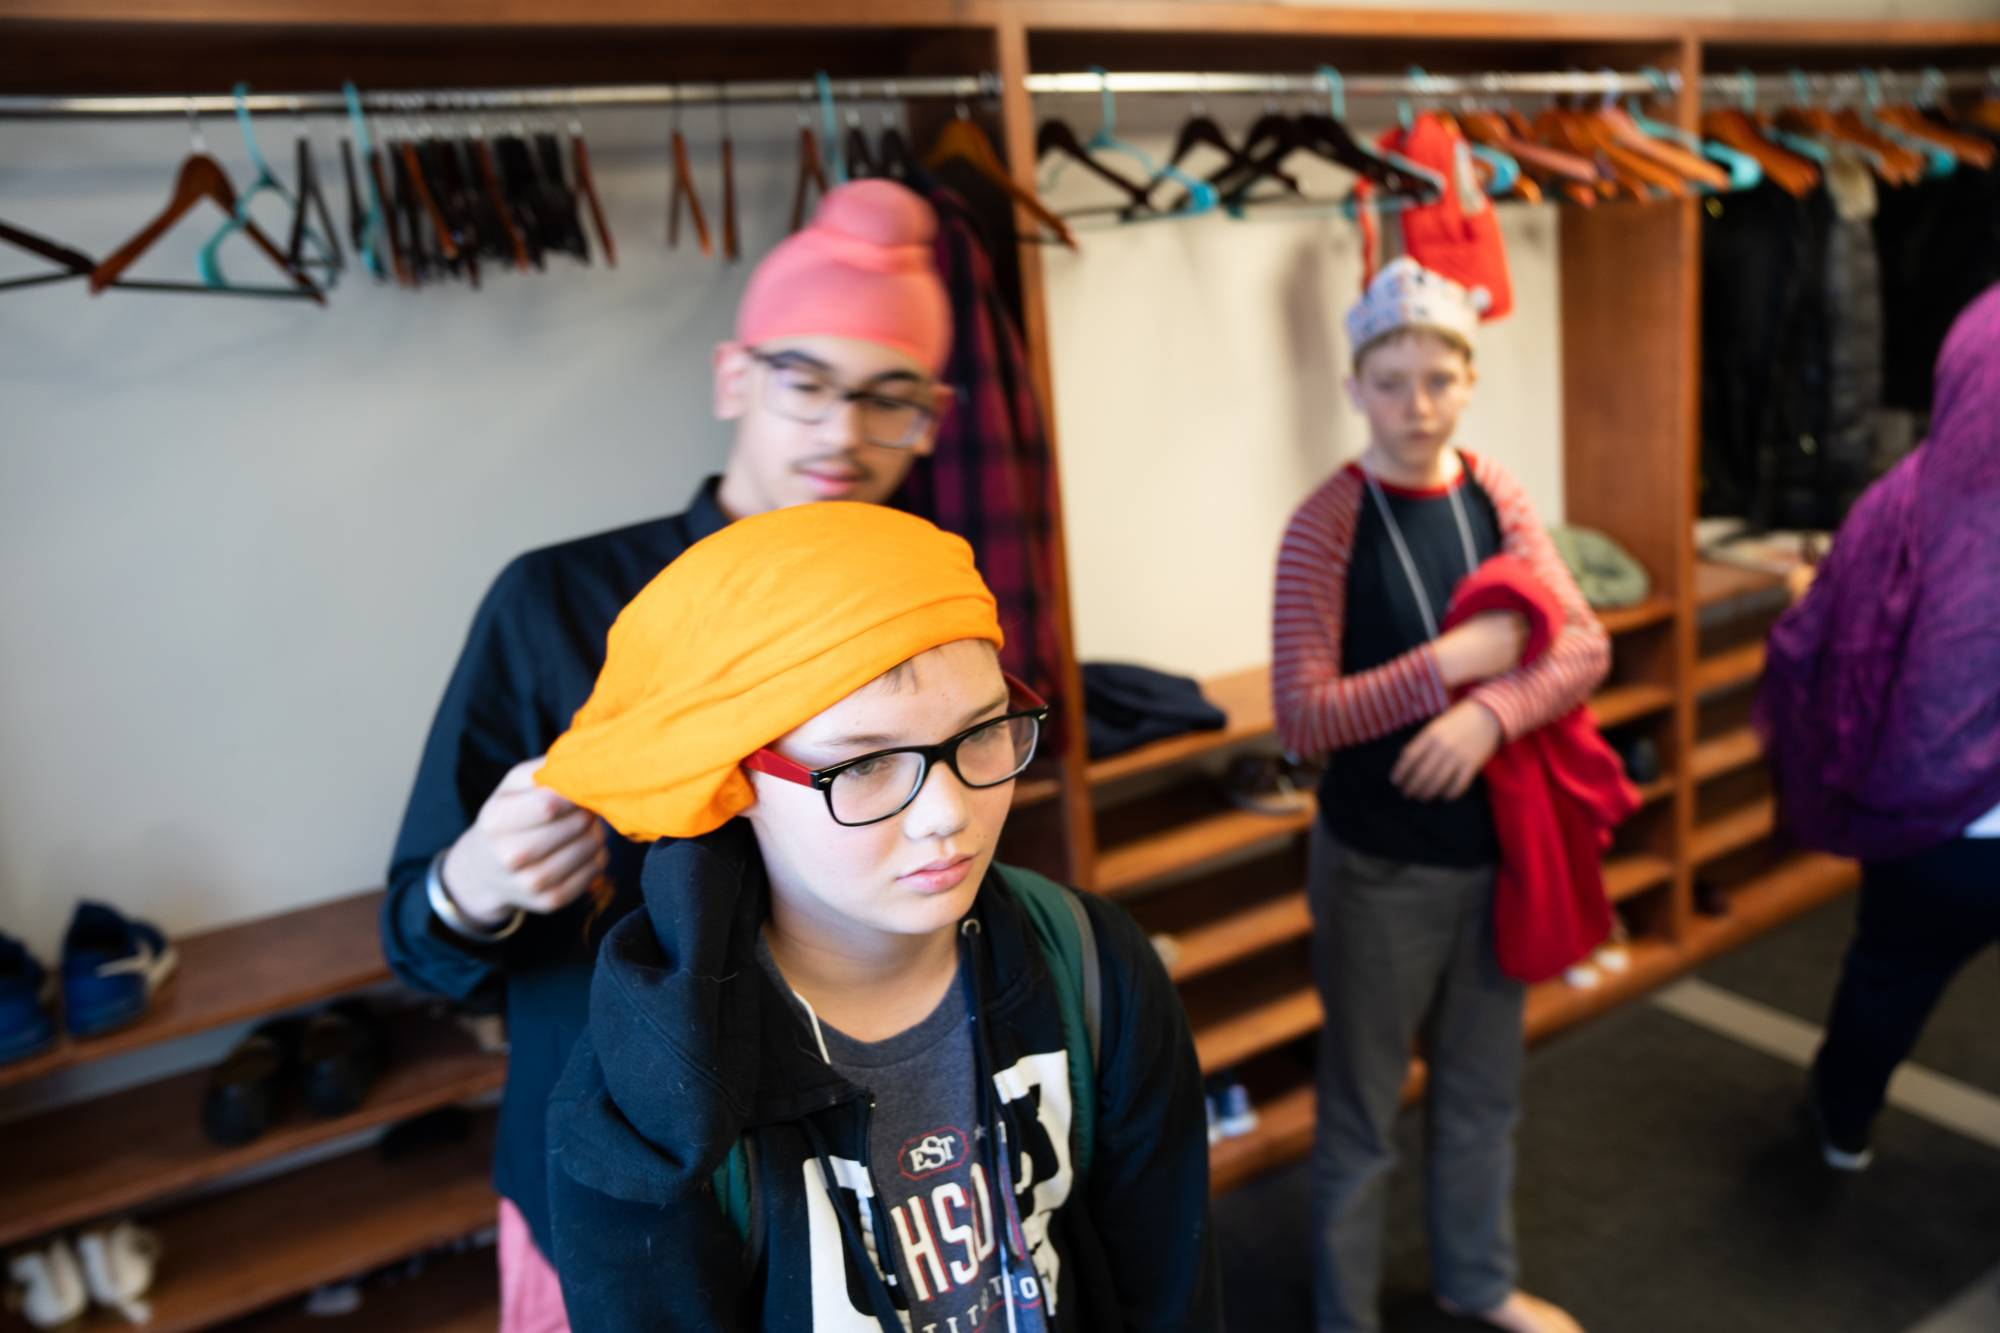 Student receiving a Sikh turban during site visit